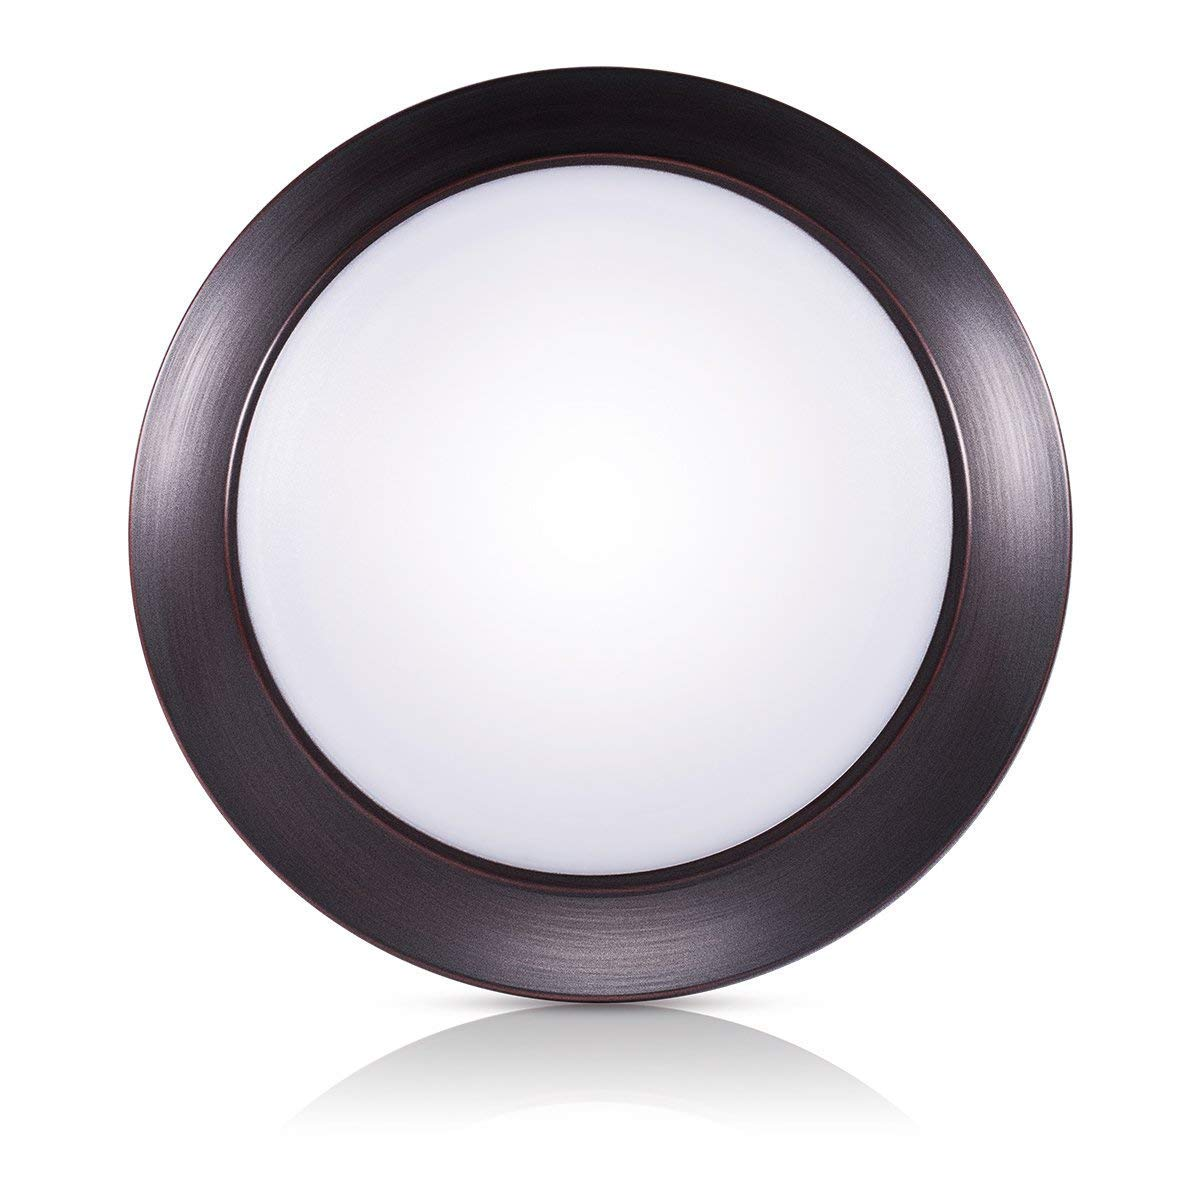 SOLLA 7.5 Inch Dimmable LED Disk Light Flush Mount Ceiling Fixture with ETL FCC Listed, 950LM, 15W (90W Equiv.), Natural White, 4000K, Bronze Finish, Ultra-Thin, Round LED Light for Home, Hotel,Office